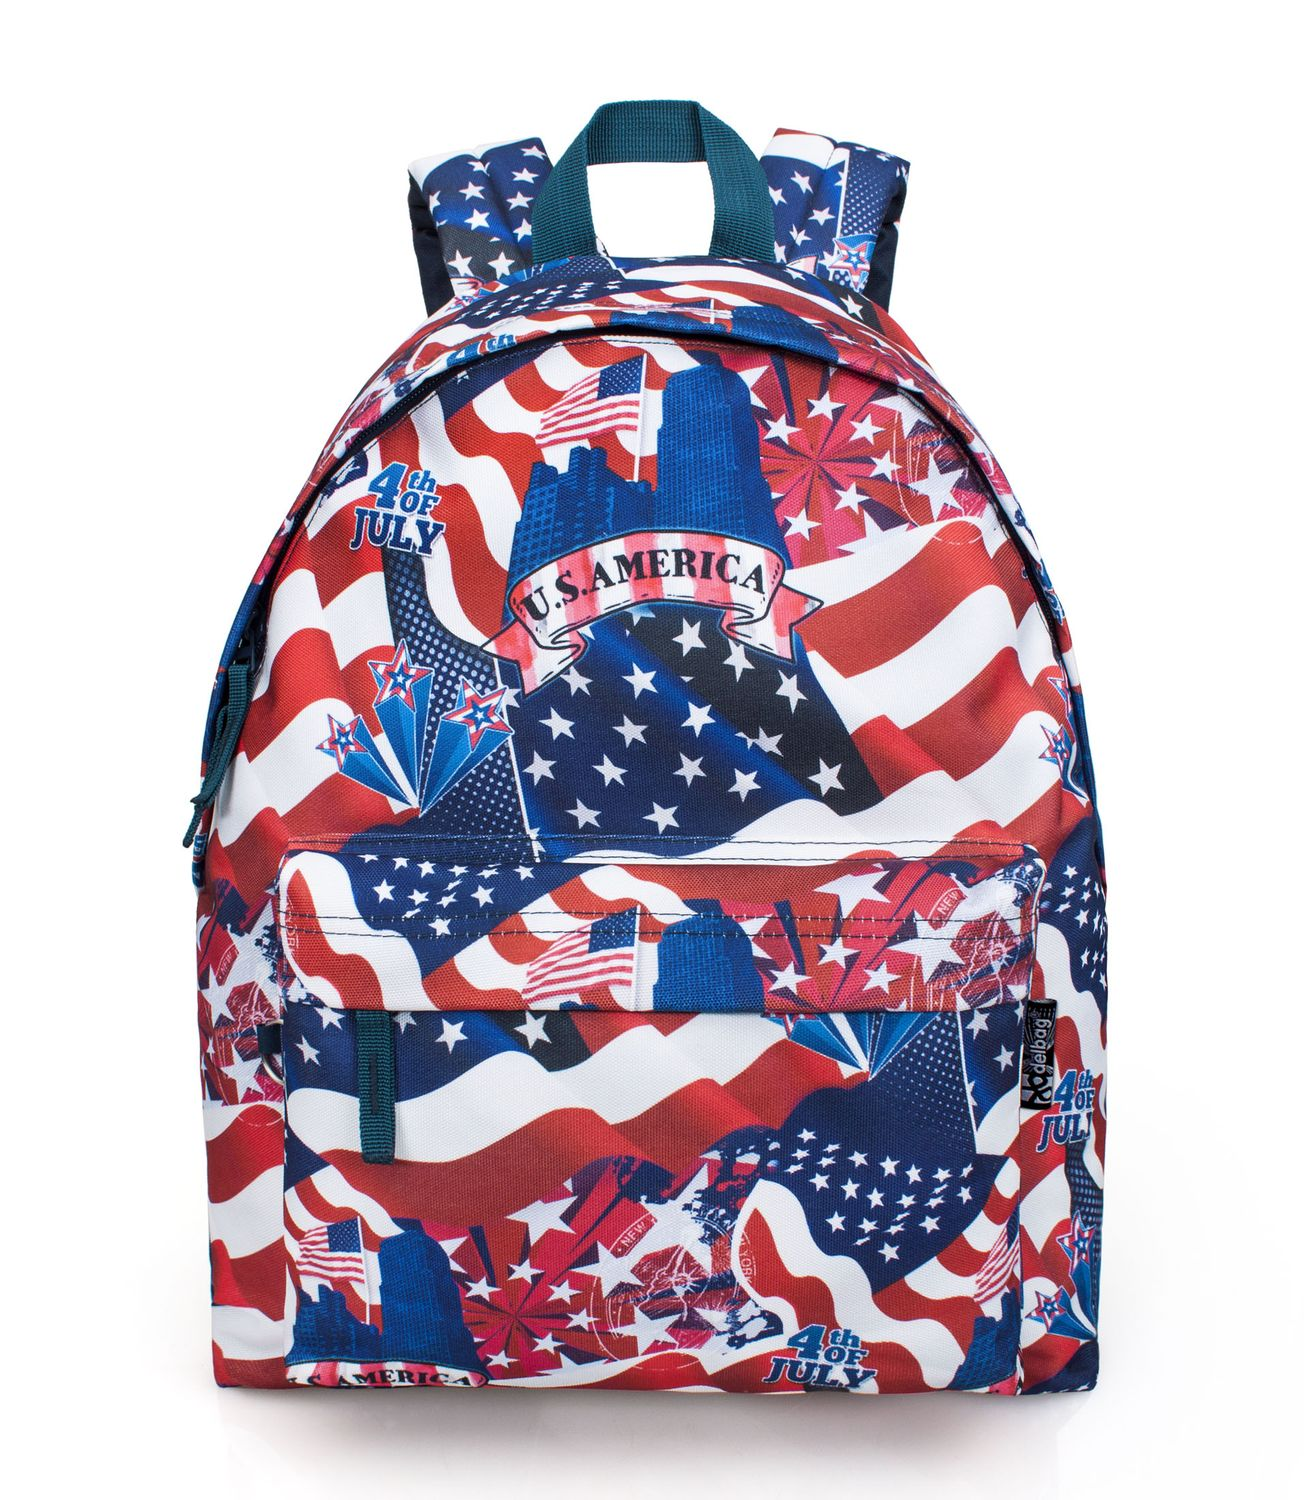 Delbag America USA Backpack